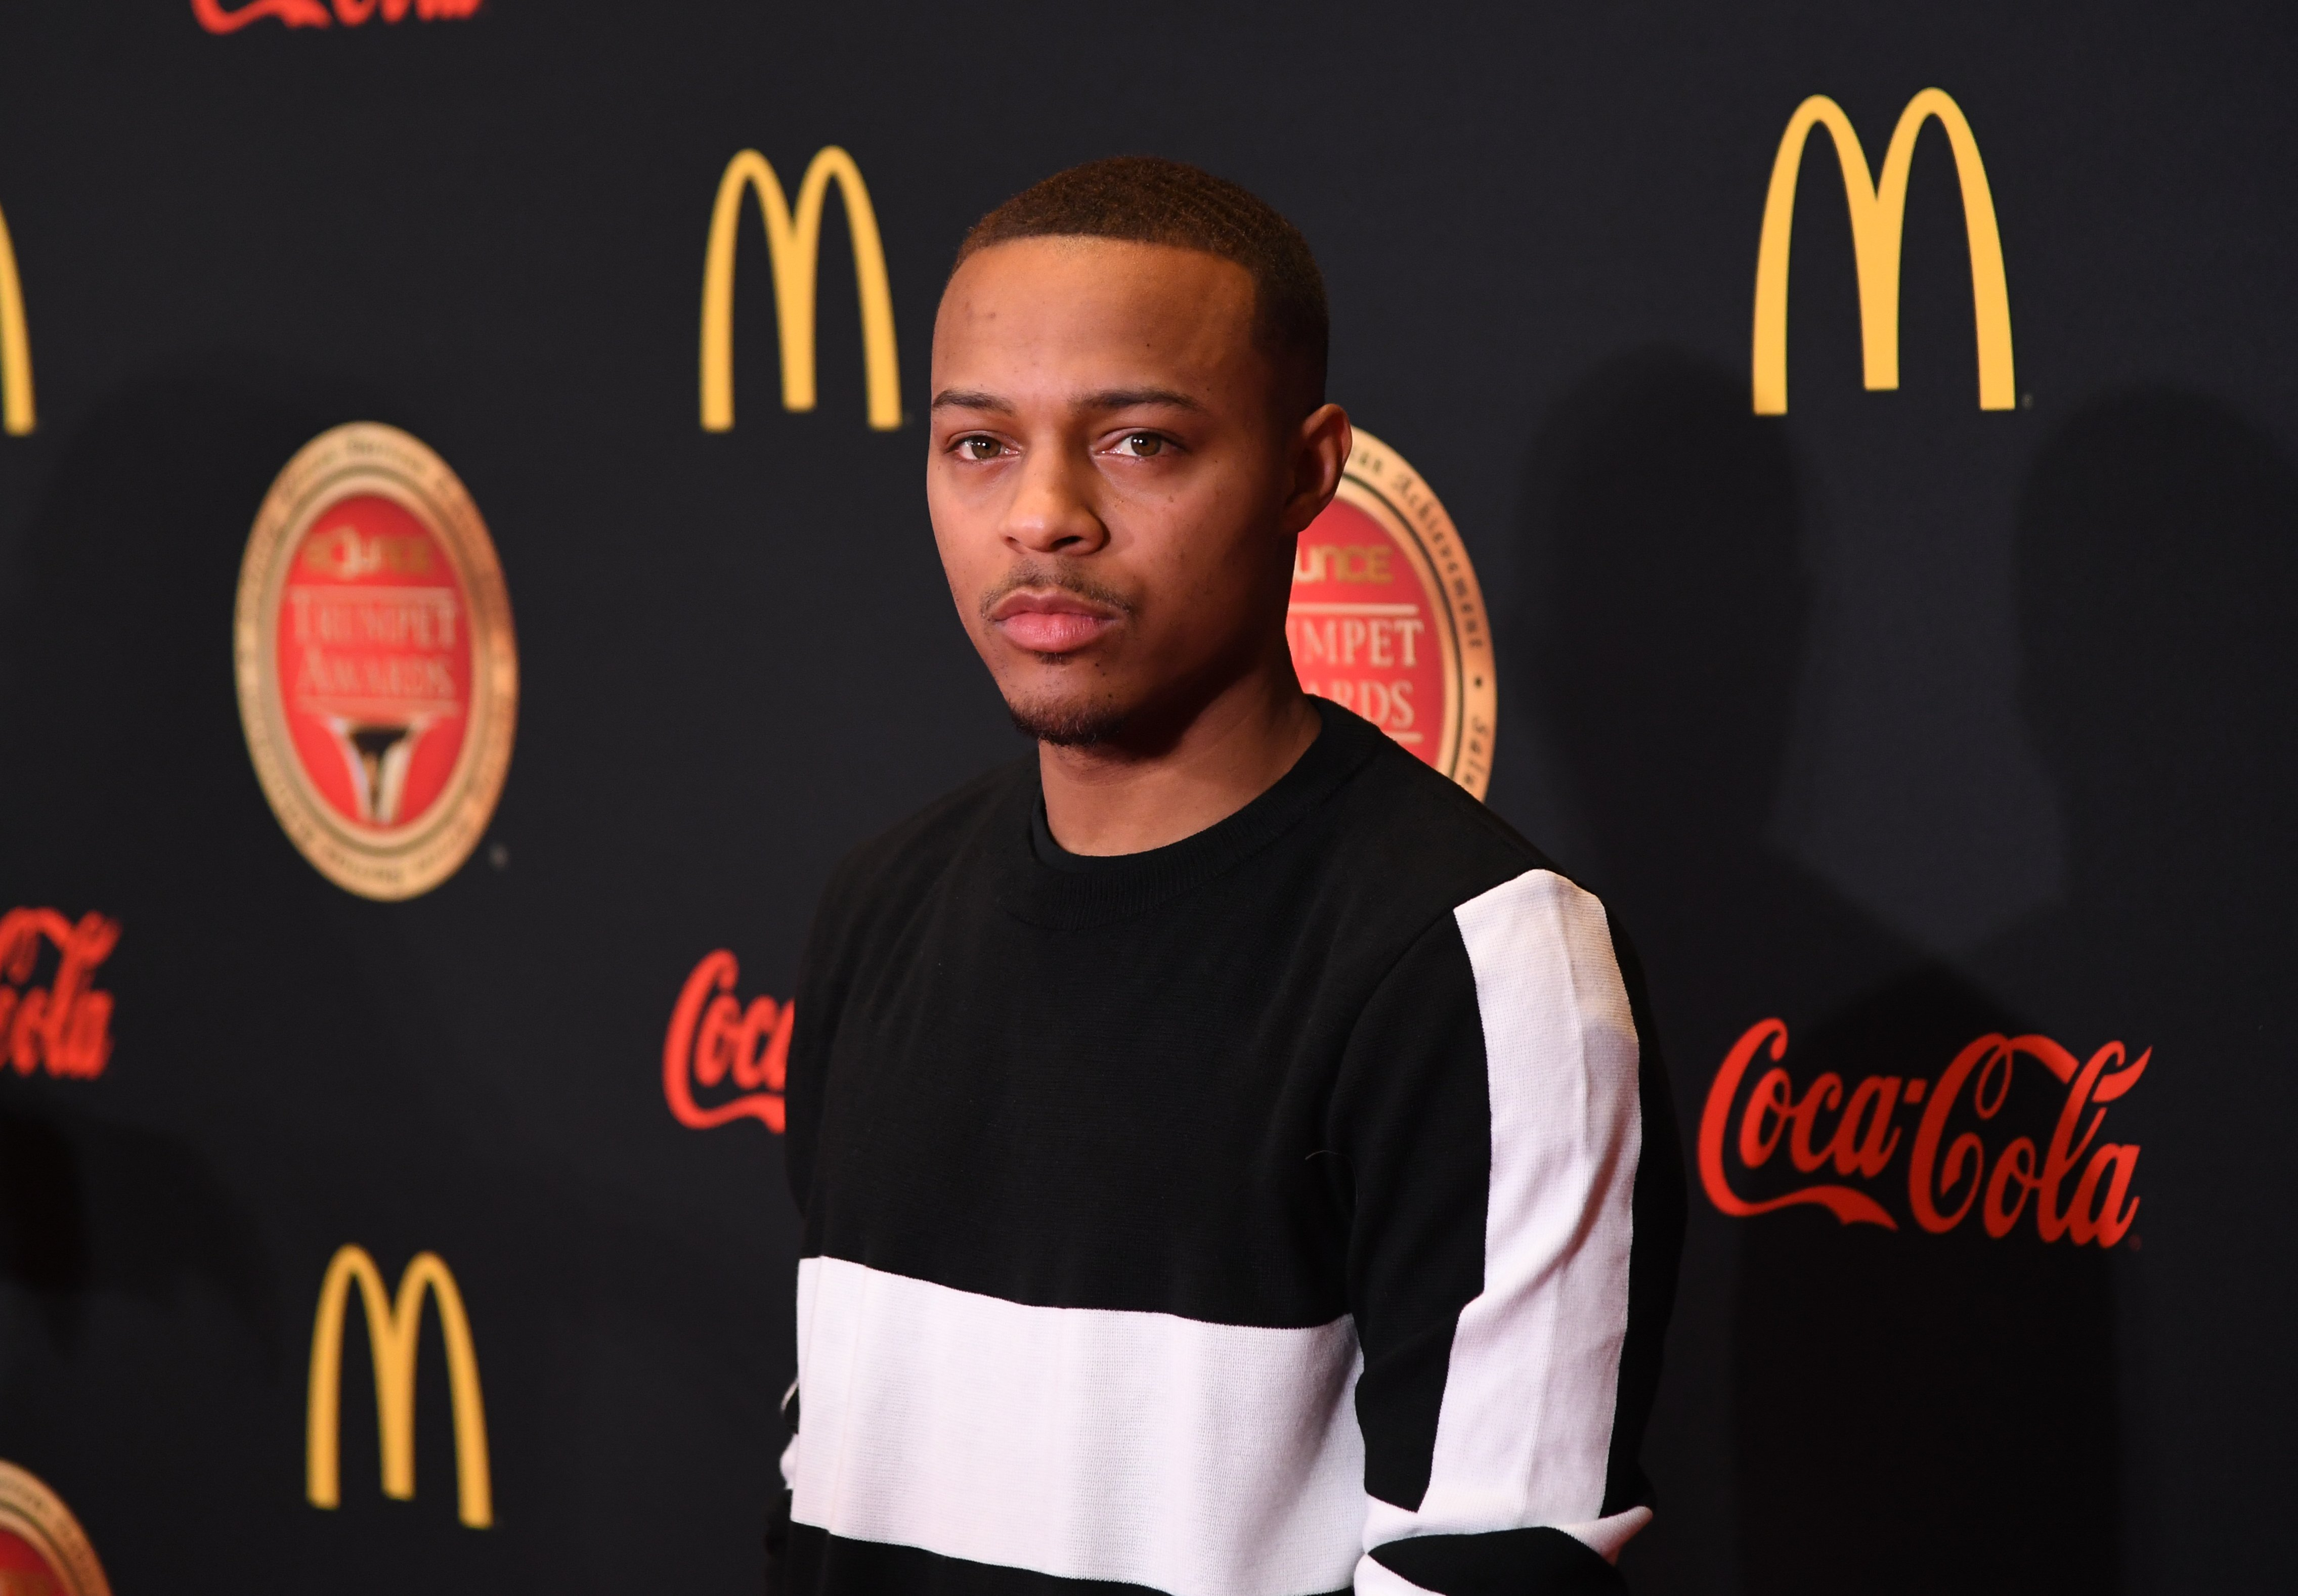 Shad Moss aka Bow Wow attends the 26th Annual Trumpet Awards at Cobb Energy Performing Arts Center on January 20, 2018 in Atlanta, Georgia | Photo: GettyImages